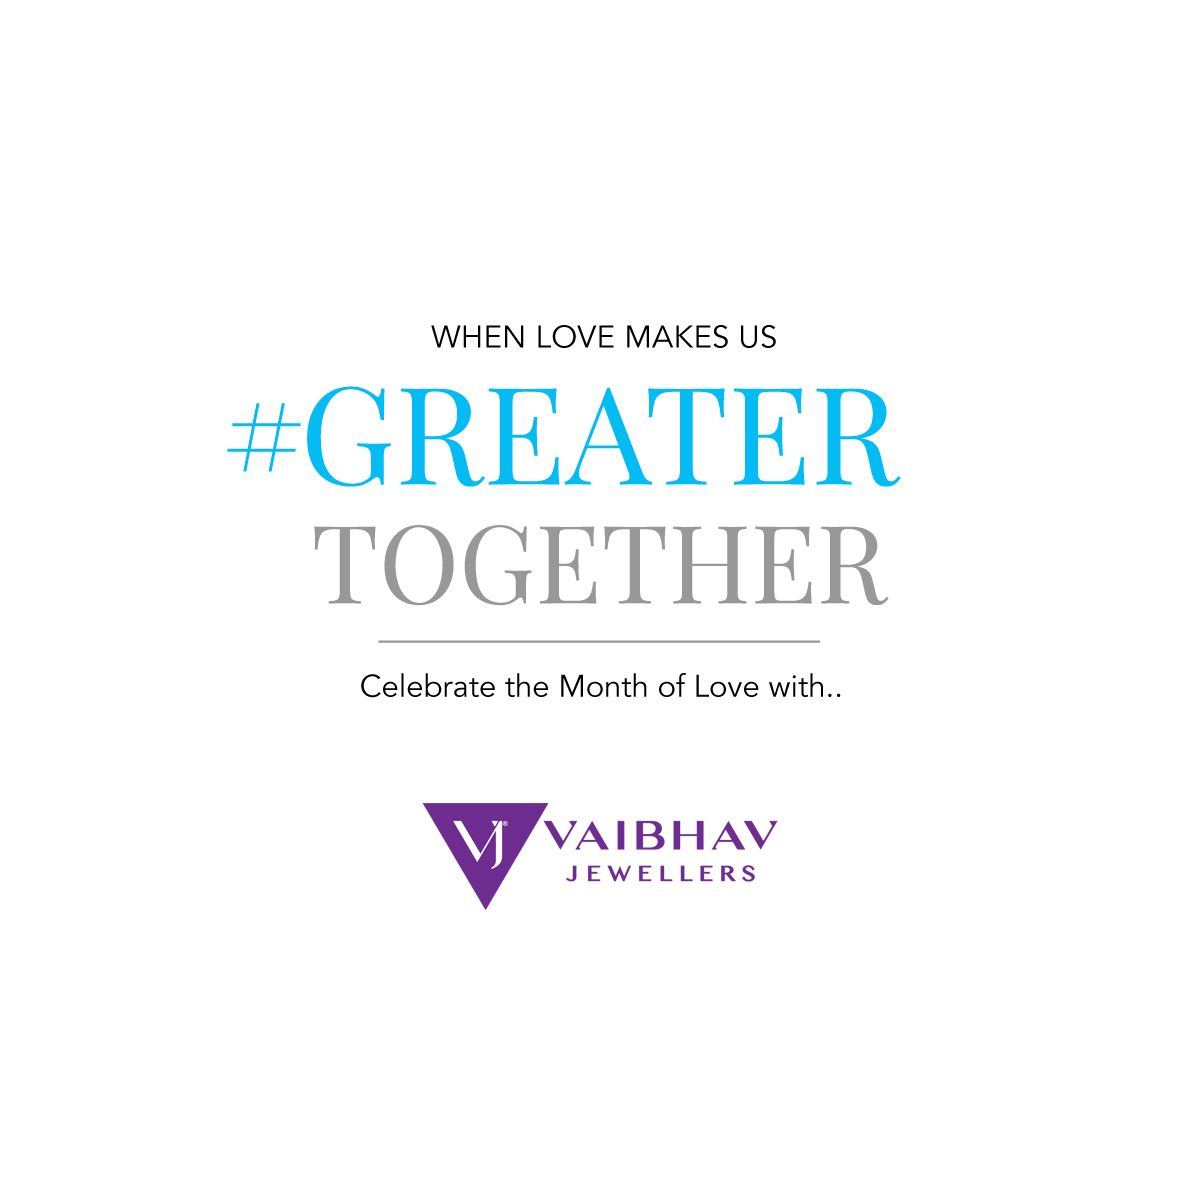 Vaibhav Jewellers's #GREATERTOGETHER #vaibhav #jewellers #greatertogether #platinum #pt #design #lovemakes #love #valentine #vaibhavjewellers #platinum #Pt #internationalshipping #online #shop #design #giftideas #giftsforhim #giftsforher #menlove #valentinesday #valentineslove #valentinegift